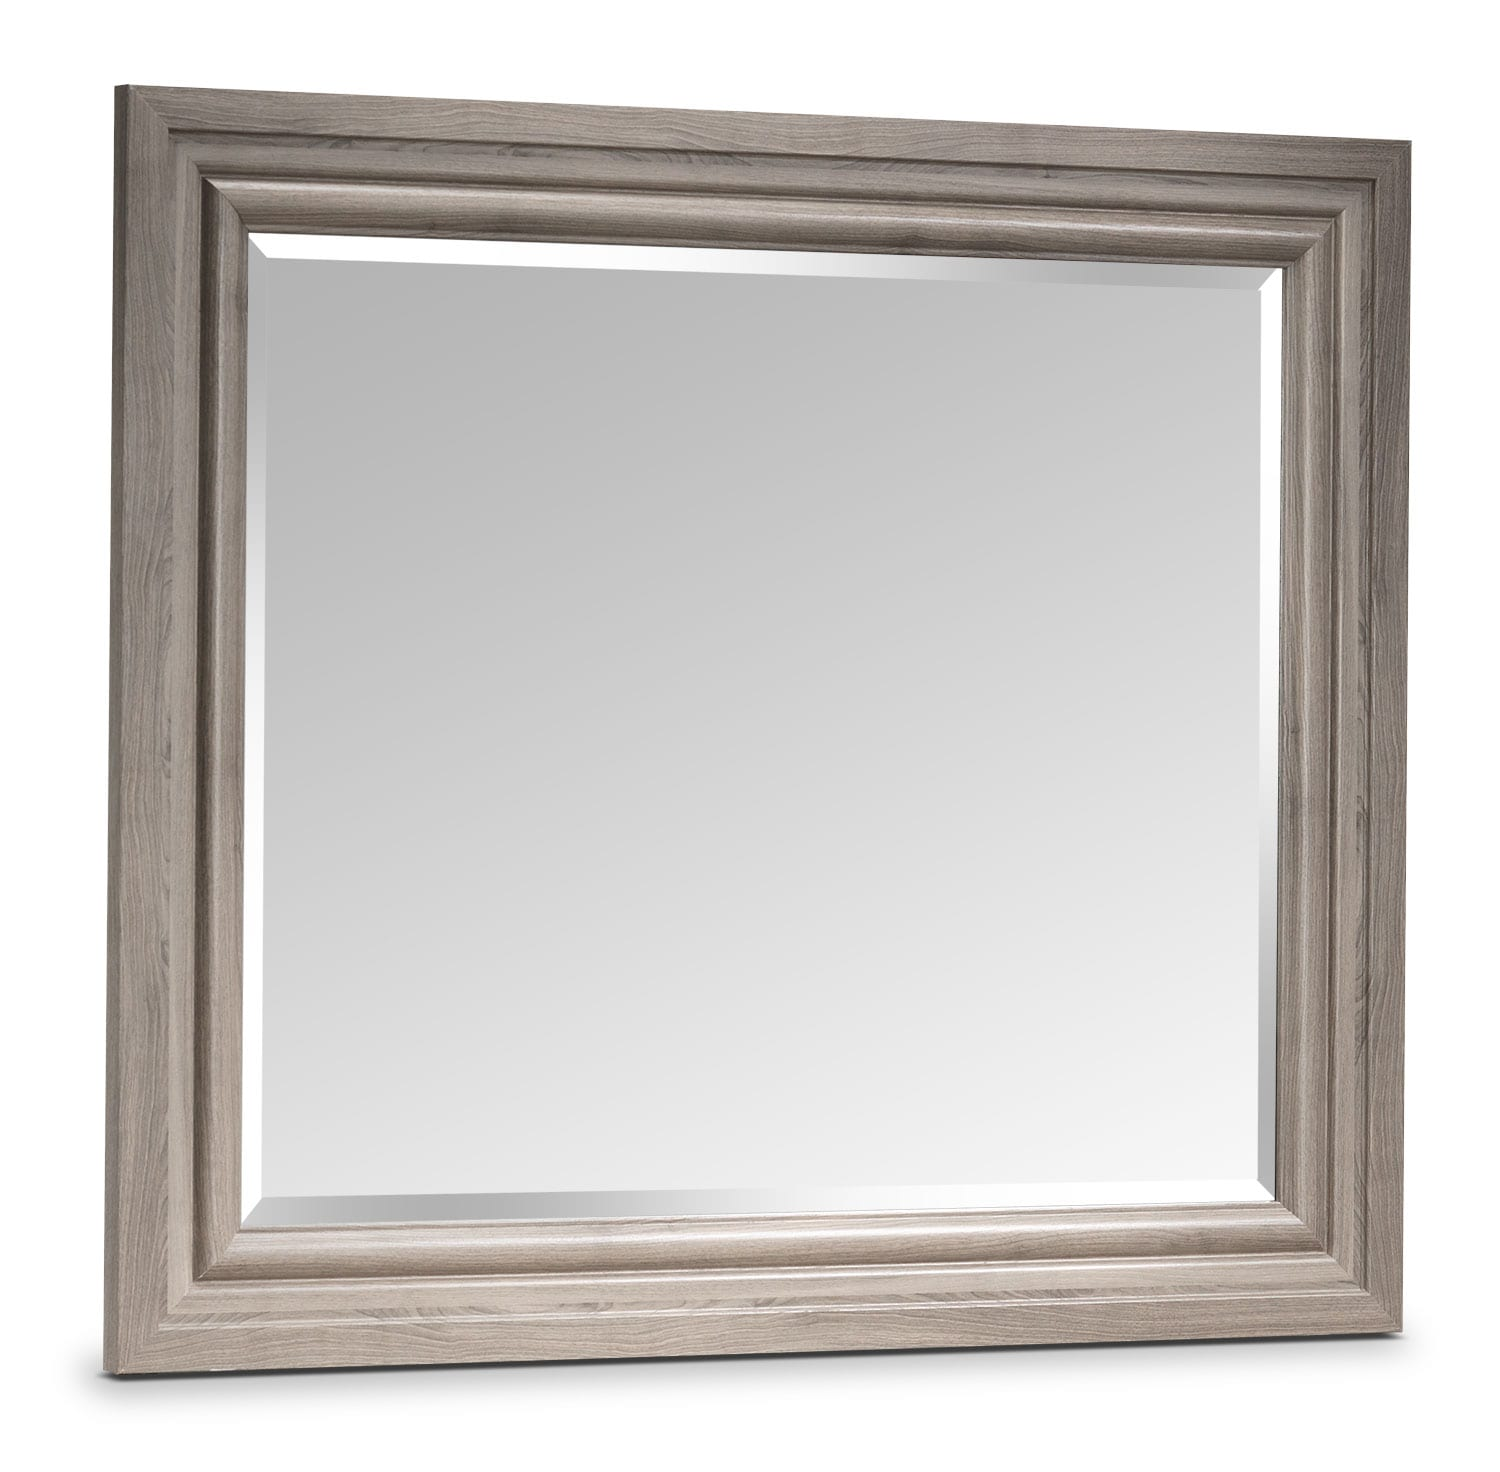 Franklin Mirror - Taupe